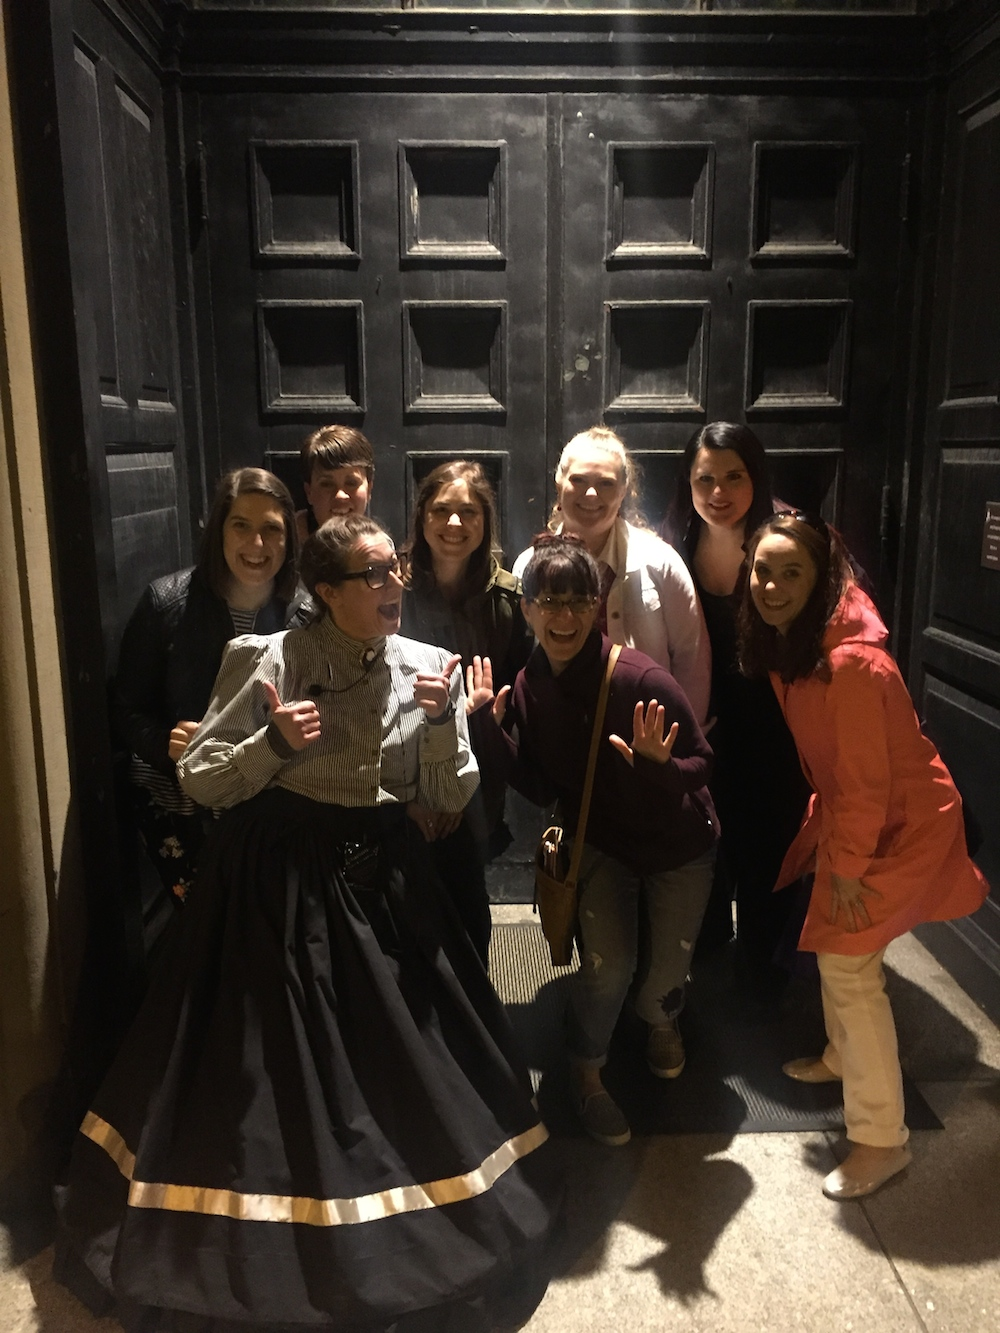 Travel bloggers pose with Anna of Gothic Milwaukee tours after a ghost tour of downtown Milwaukee, Wisconsin